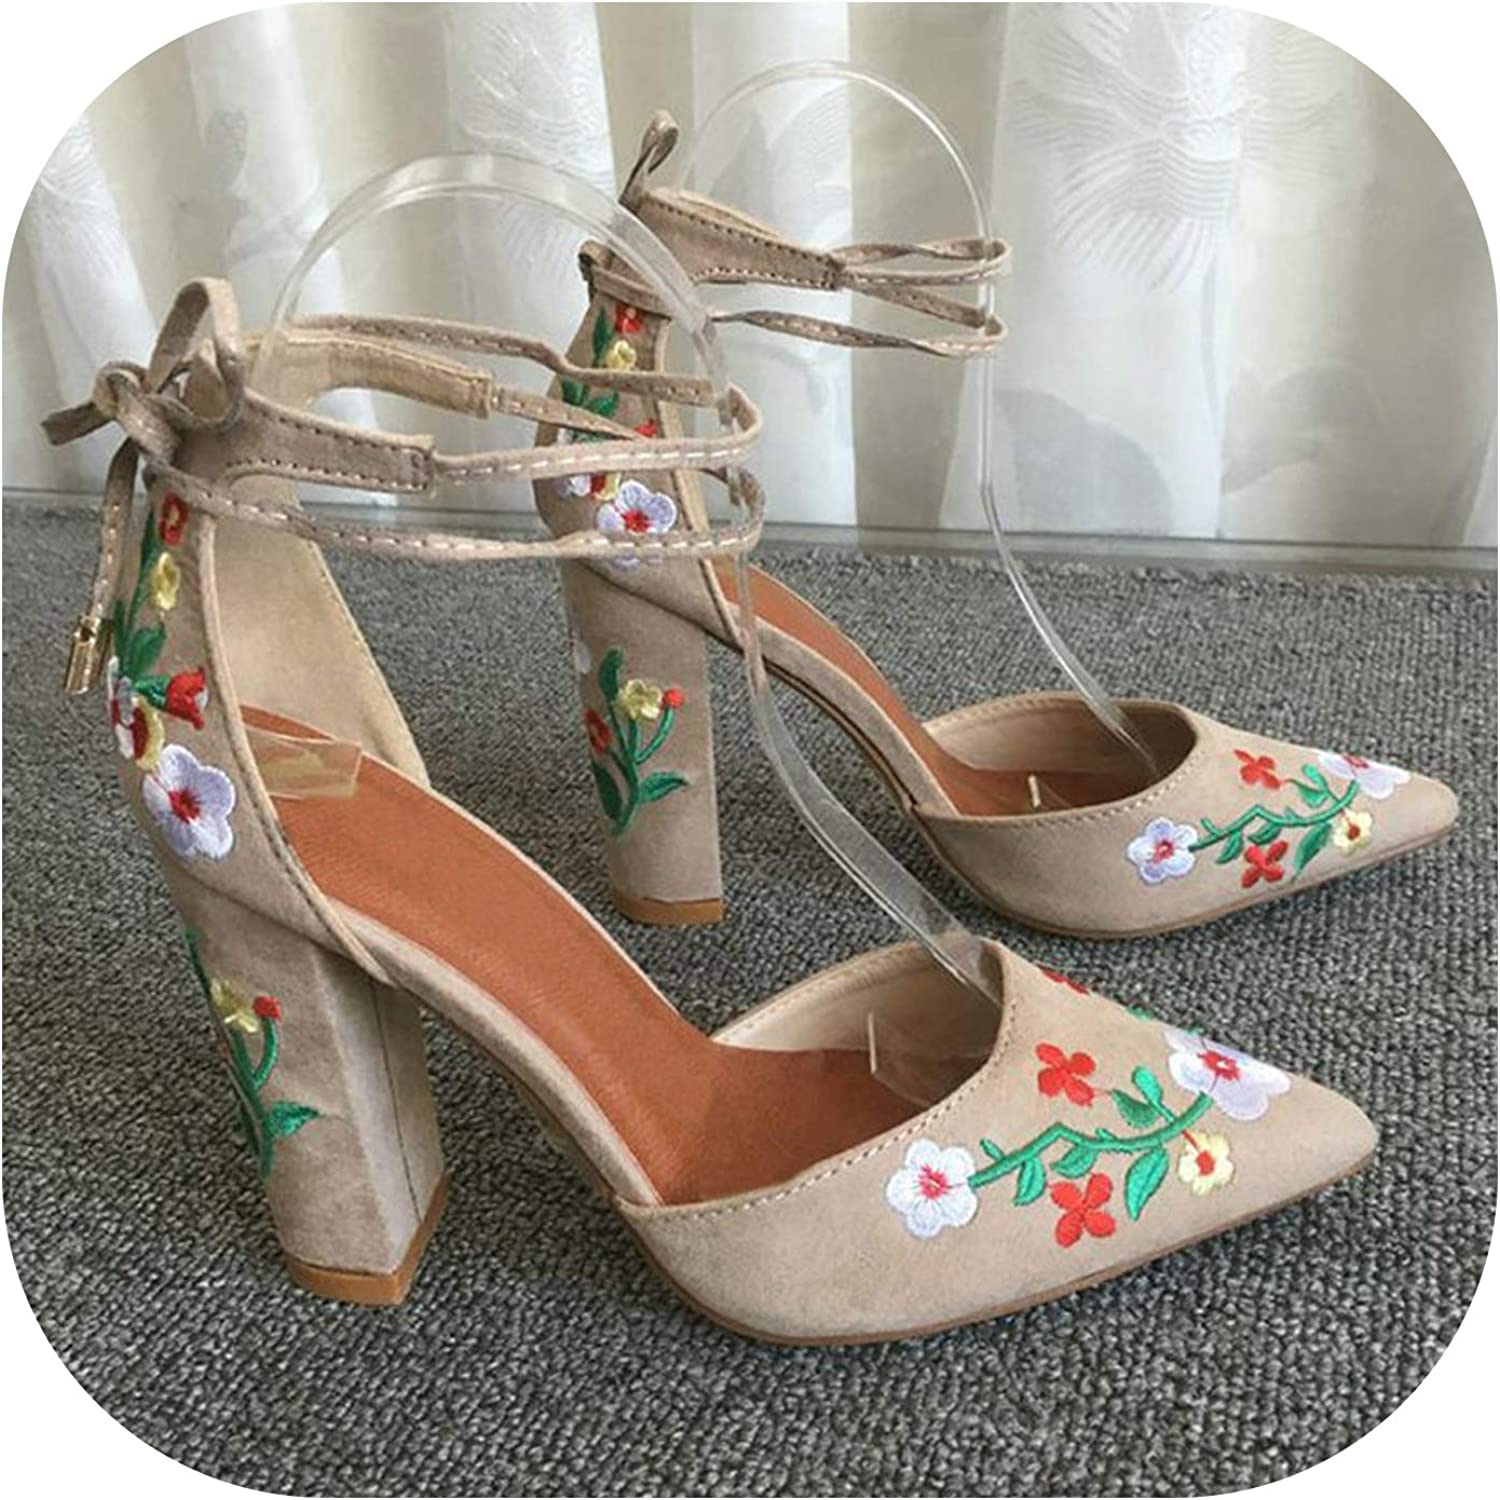 Women High Heels Embroidery Pumps Flower Ankle Strap shoes Two Piece Wedding Pointed Toe